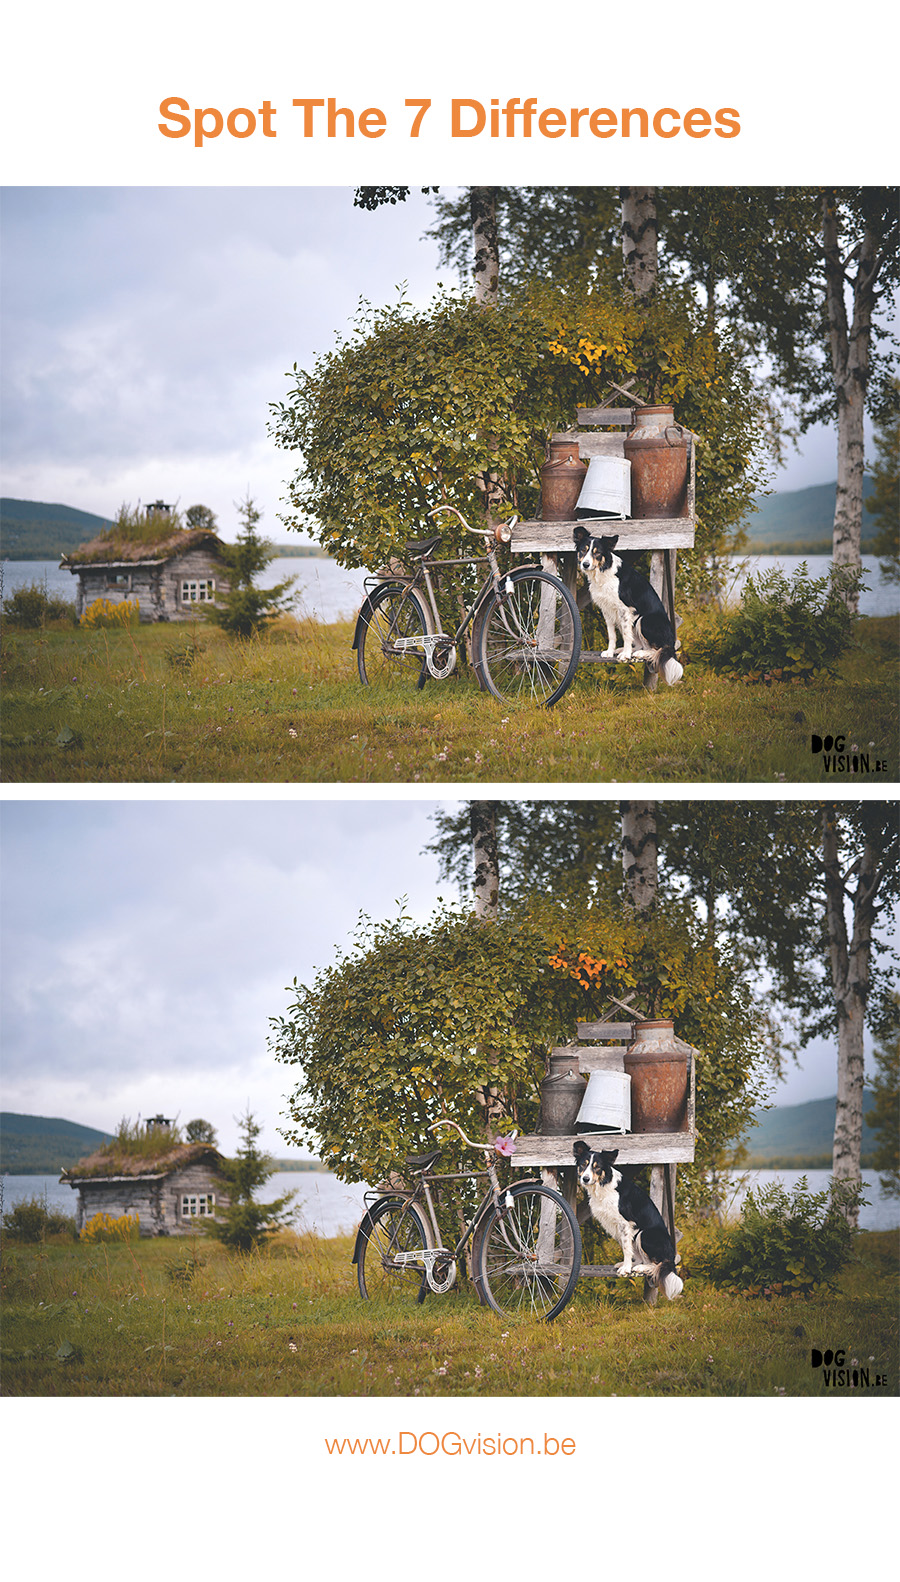 A game on Monday: Can you spot the 7 differences? | DOGvision, dog photography | Sweden | Blog on www.DOGvision.be